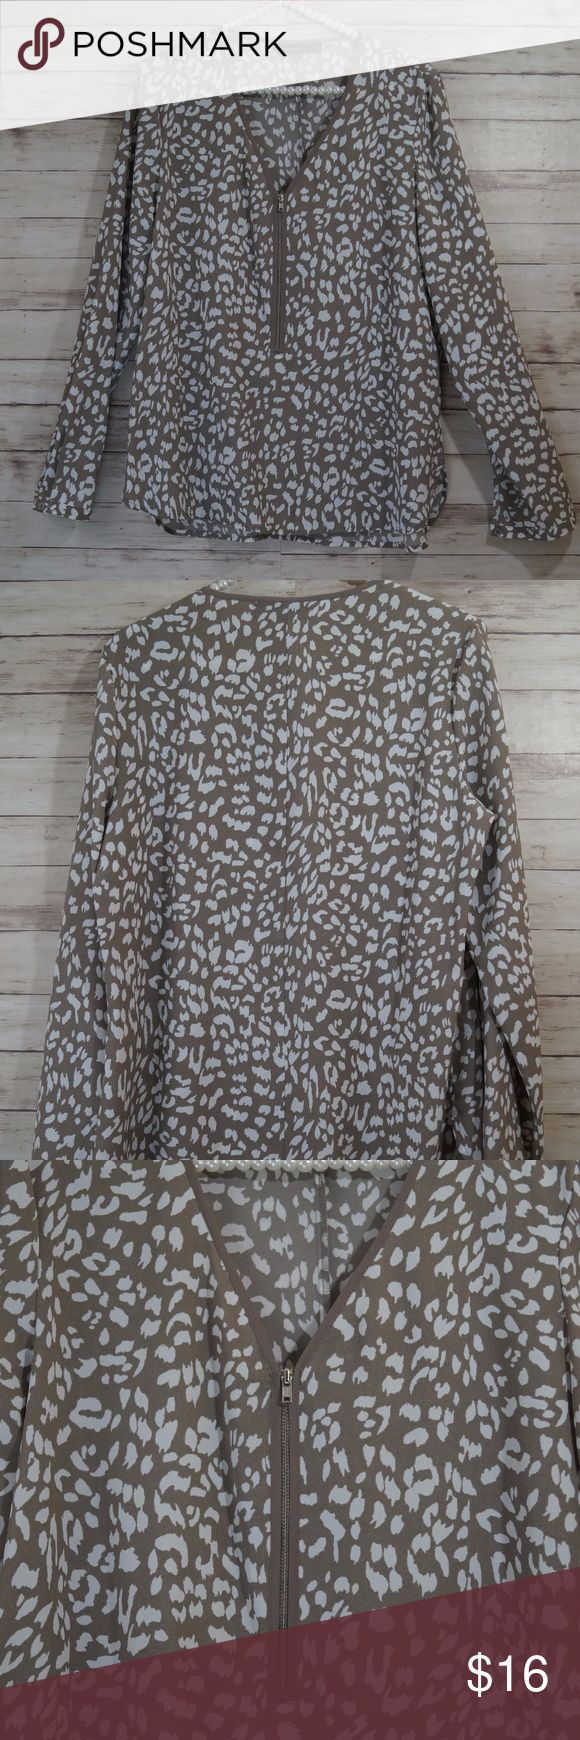 APT 9 Animal Print Zip up Blouse Size M Size: Medium Bust: 20 inches laying flat Length Front: 25 inches Length Back: 27 inches  Condition: In Great condition!  Please ask all questions prior to purchase since all sales are final!  Thank you. Apt. 9 Tops Blouses